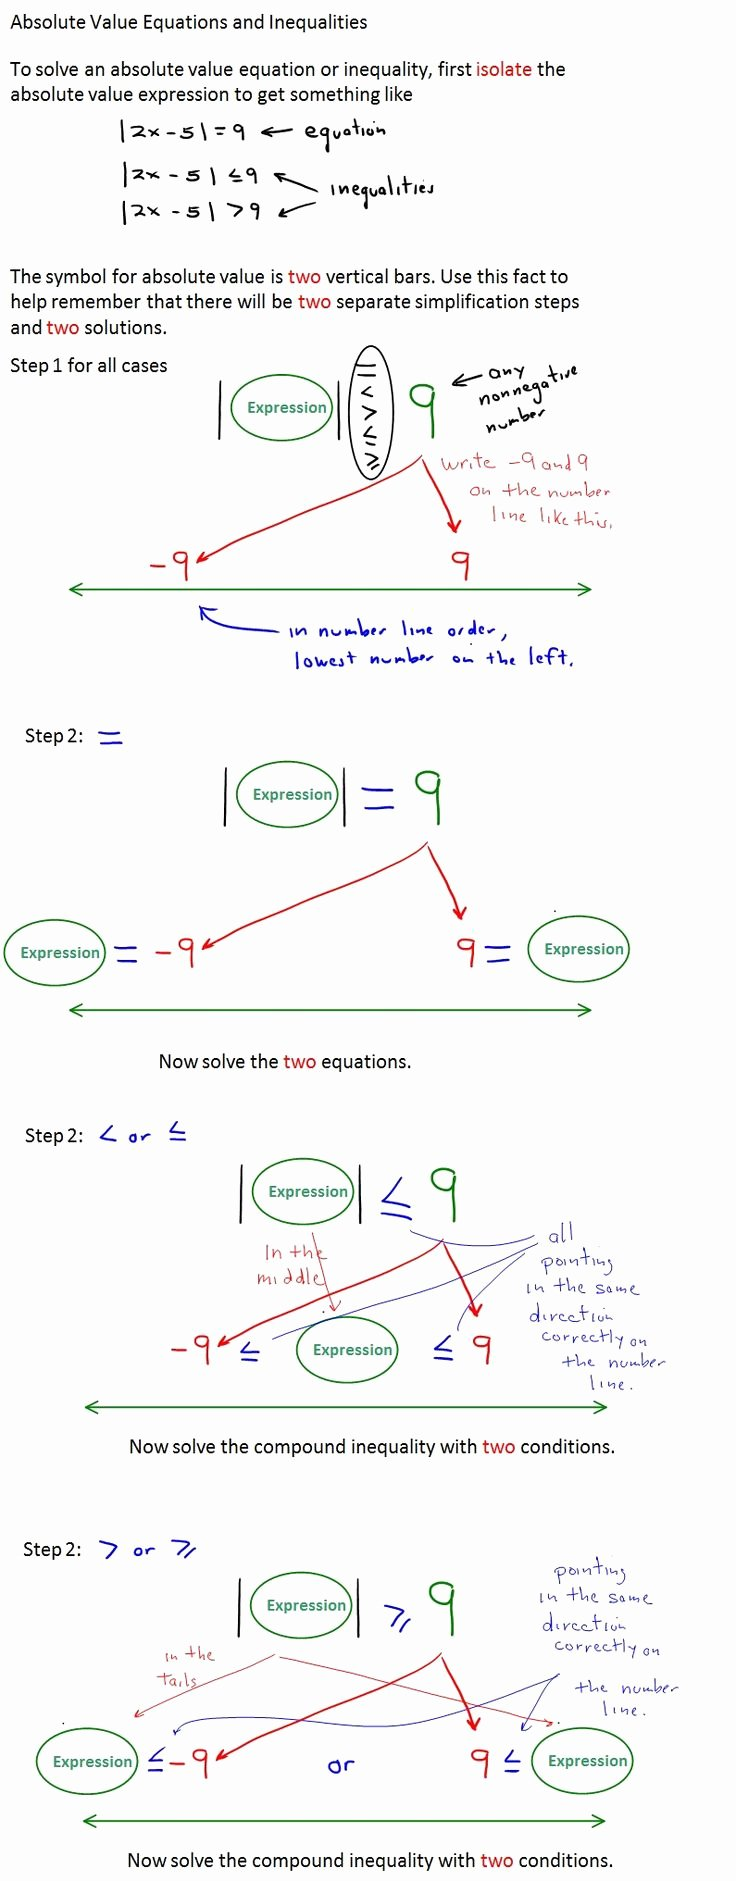 Solving Absolute Value Inequalities Worksheet Lovely Best 25 Absolute Value Ideas On Pinterest